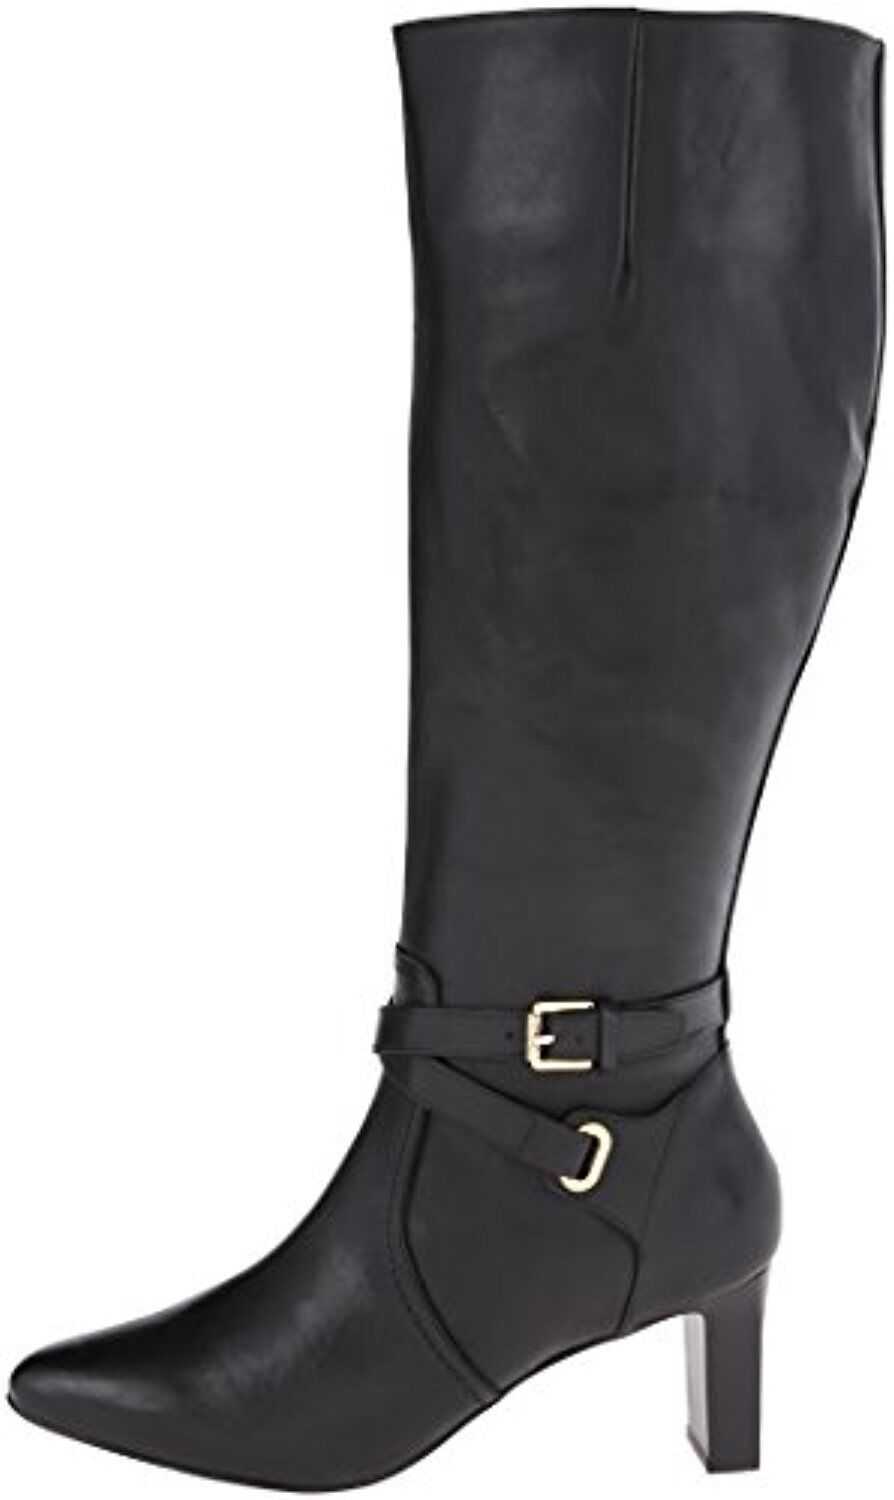 Lauren Ralph Lauren Women's Nally Chelsea Burnished Calf Boot BLACK Size-5.5 B